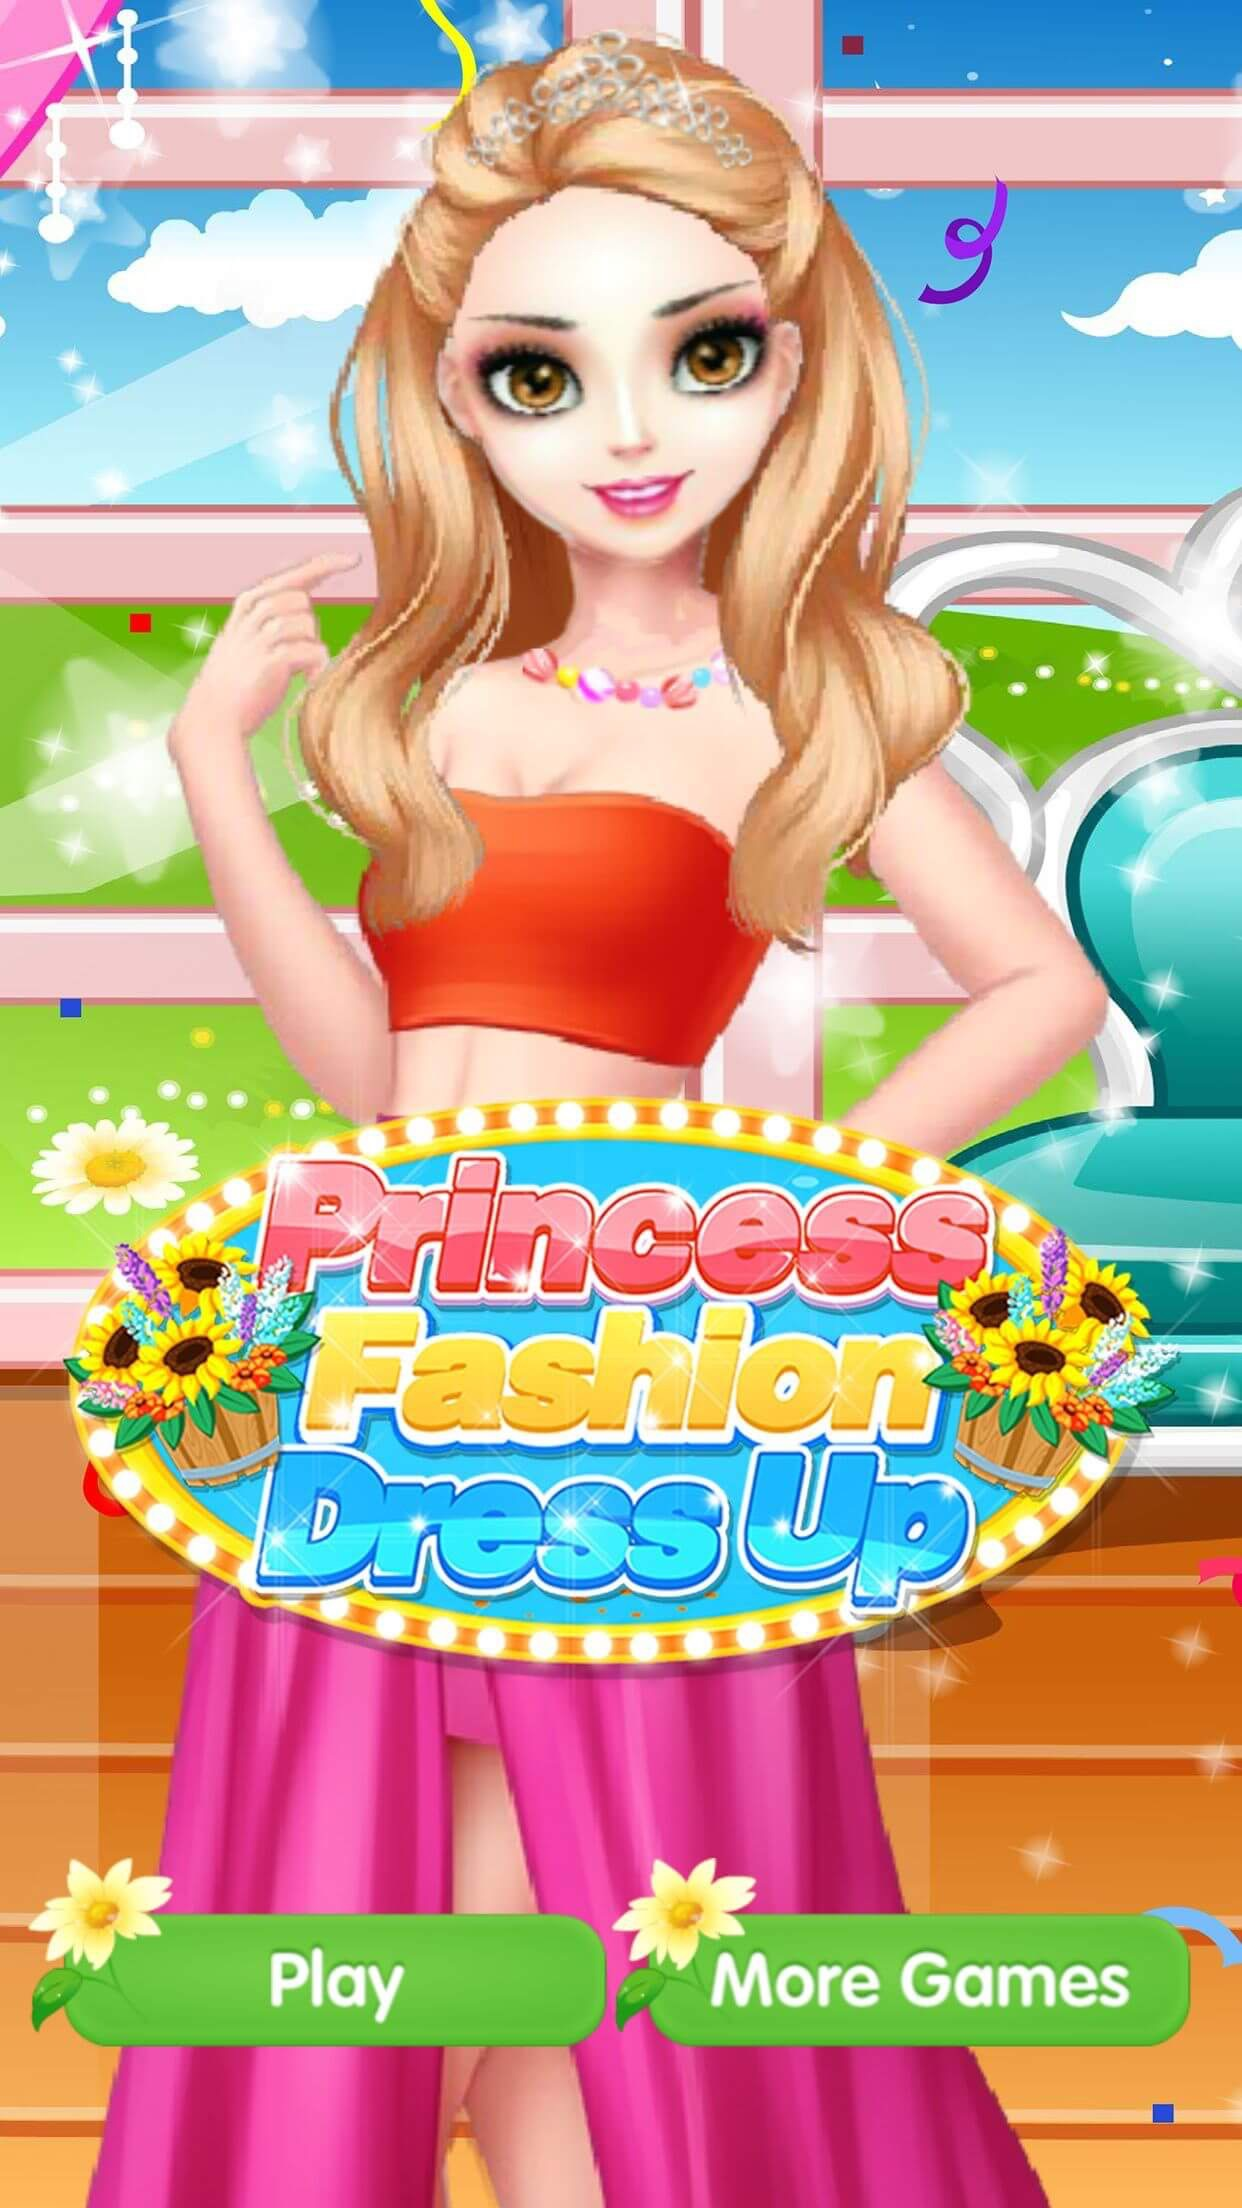 Princess Fashion Dress Up -Free Fun Girl Games by Le Zhao